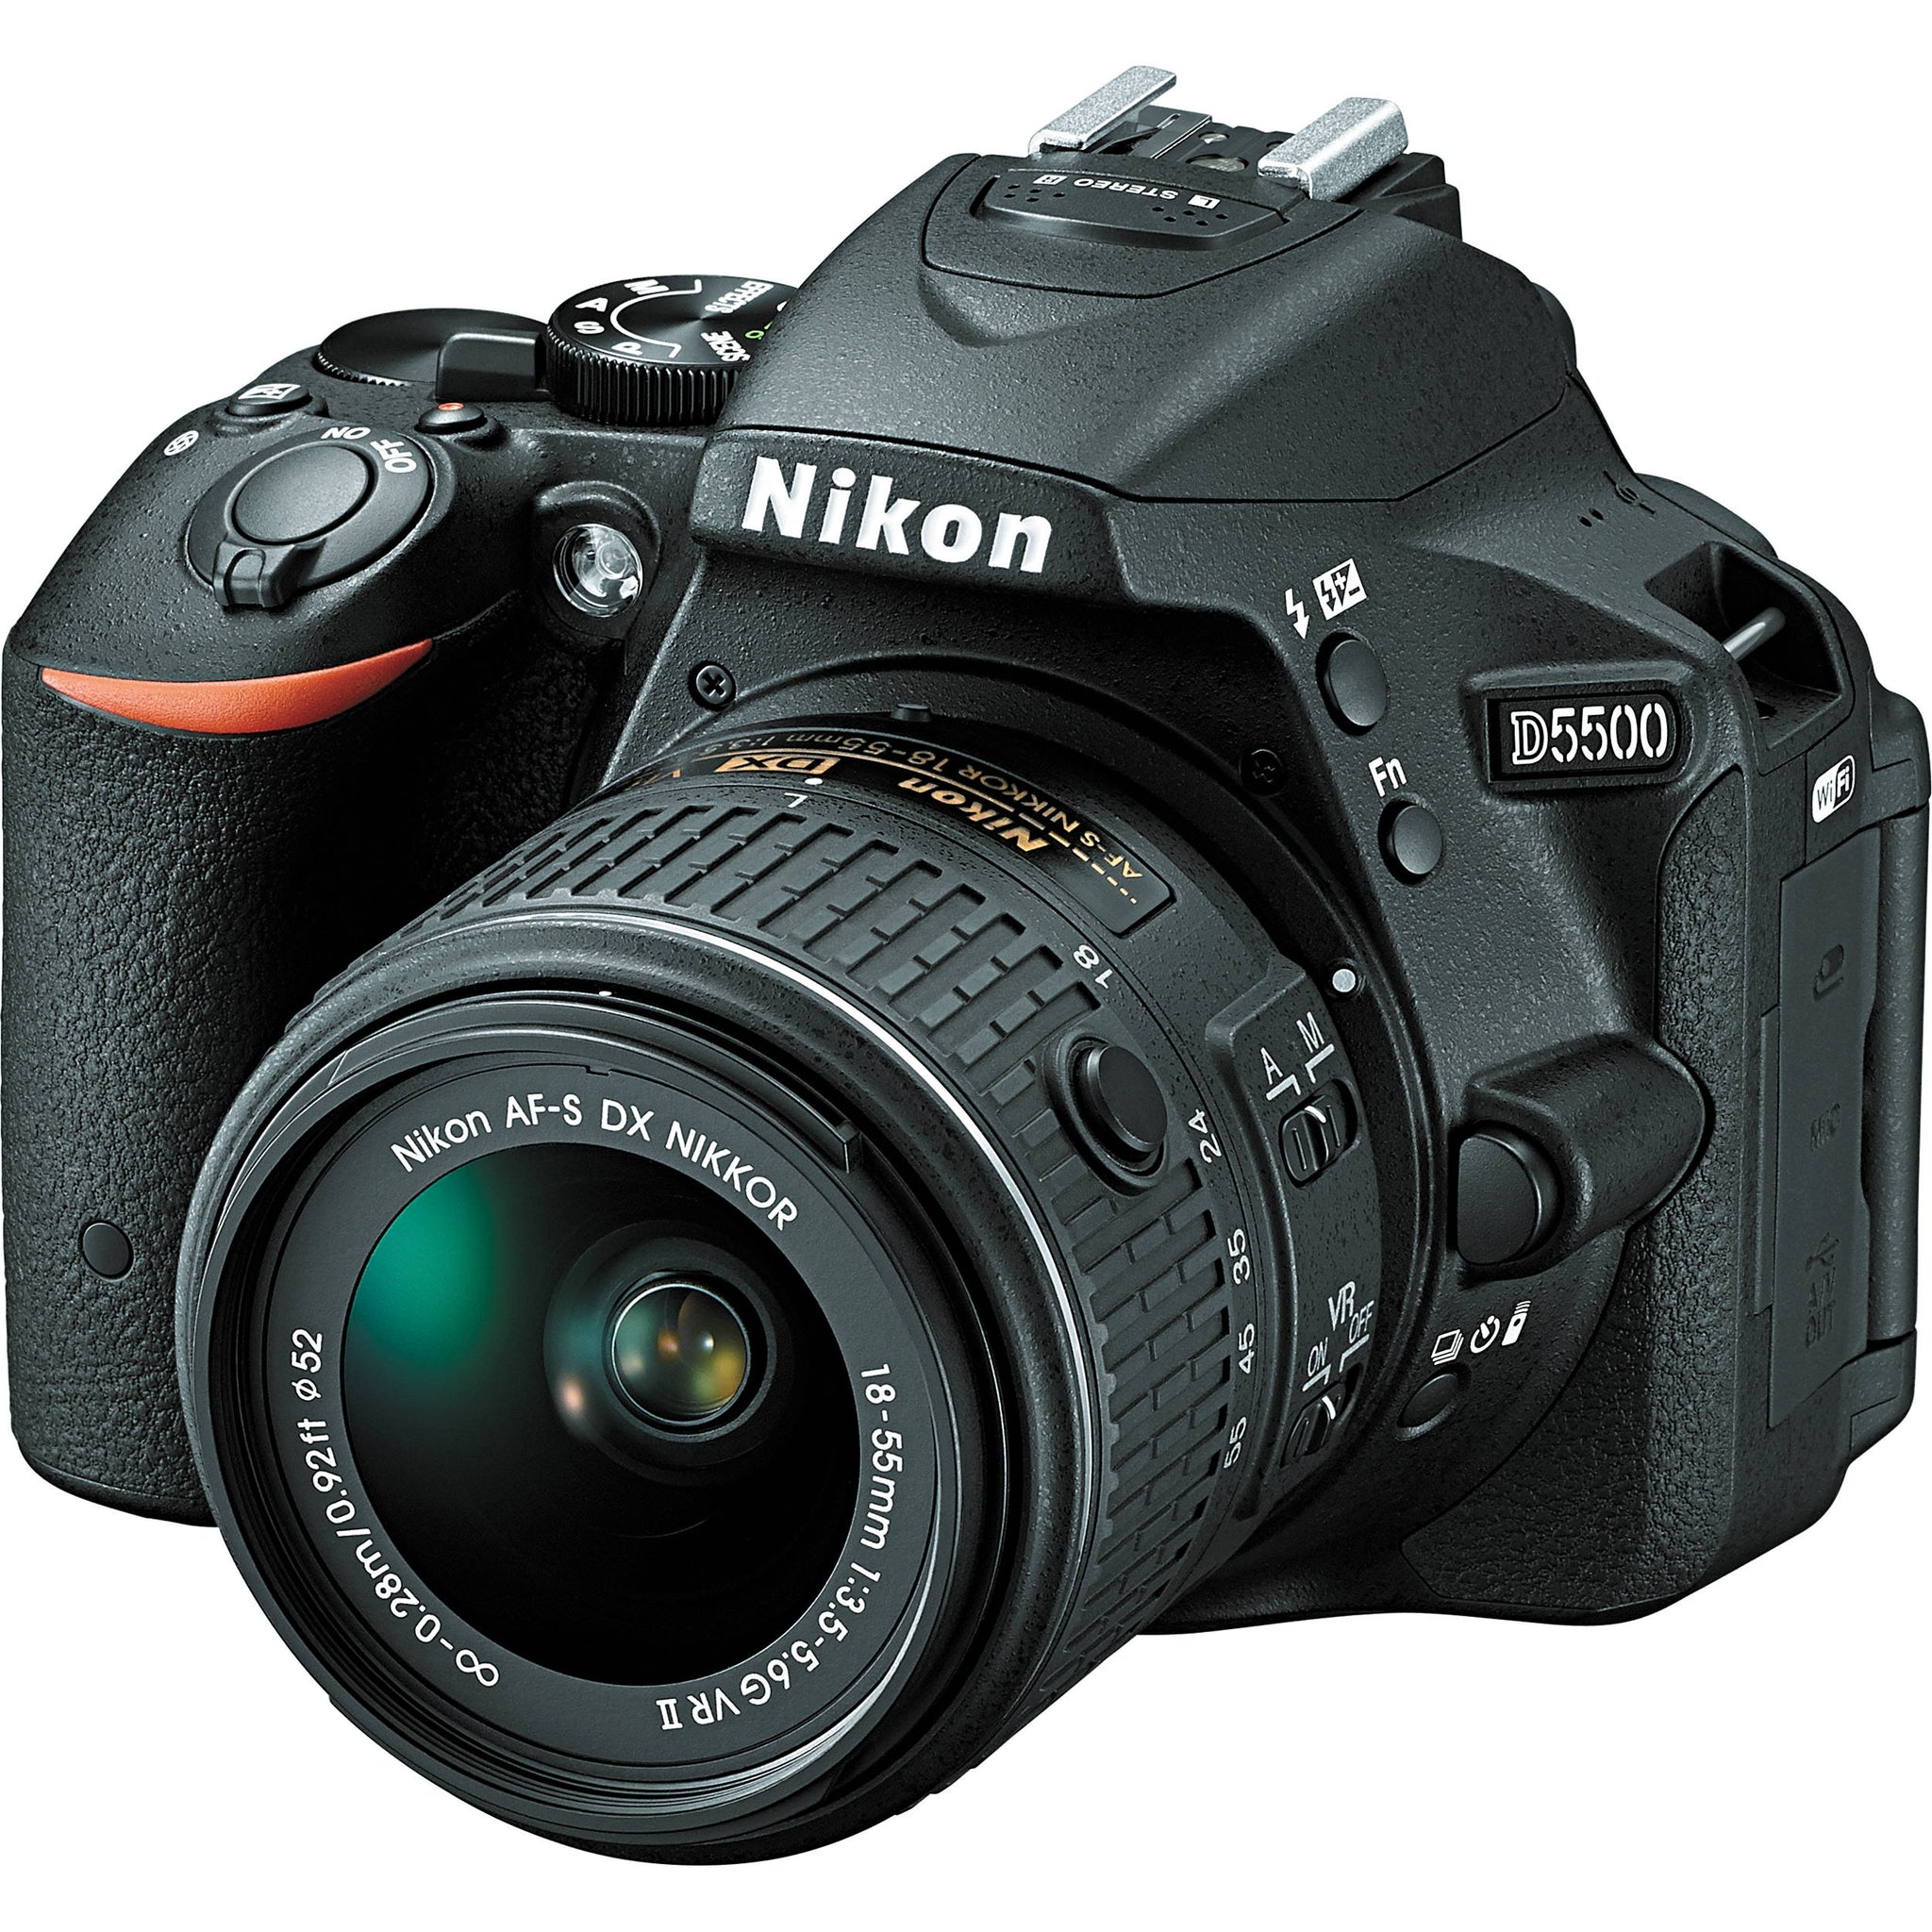 Nikon D5500 | Touch Screen DSLR  24.2MP DX-Format Camera with Built-in WiFi